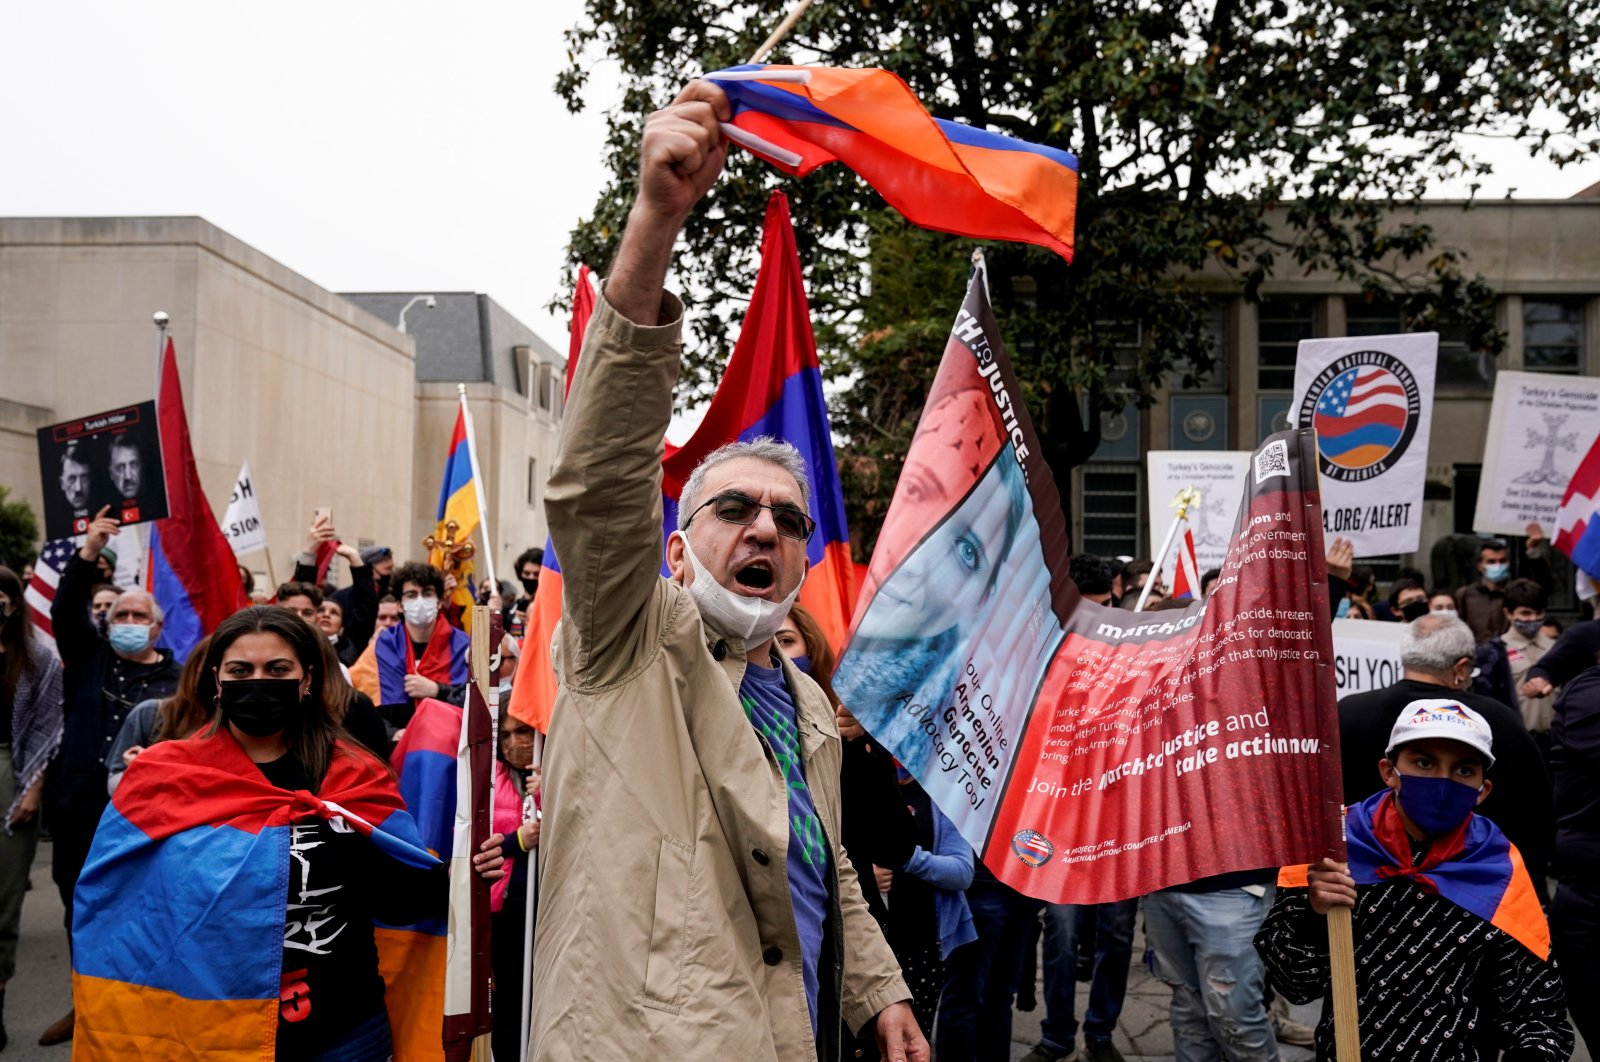 Members of the Armenian diaspora rally in front of the Turkish Embassy after U.S. President Joe Biden recognized that the 1915 massacres of Armenians in the Ottoman Empire constituted genocide in Washington, D.C., U.S., April 24, 2021. (Reuters Photo)